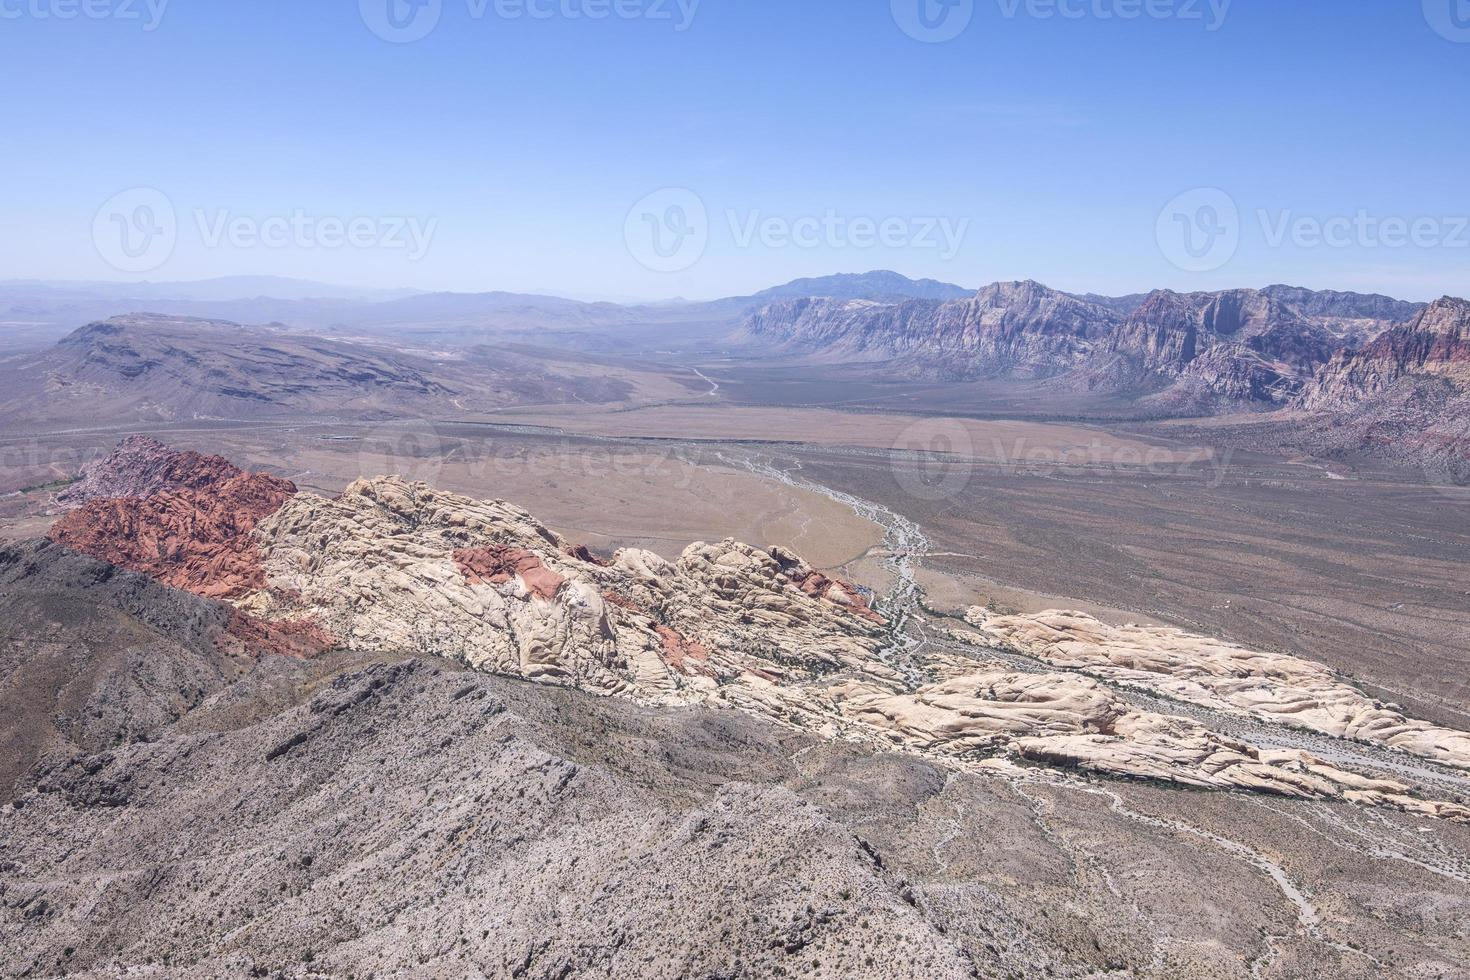 Red Rock Canyon, Nevada malerische High Angle View foto